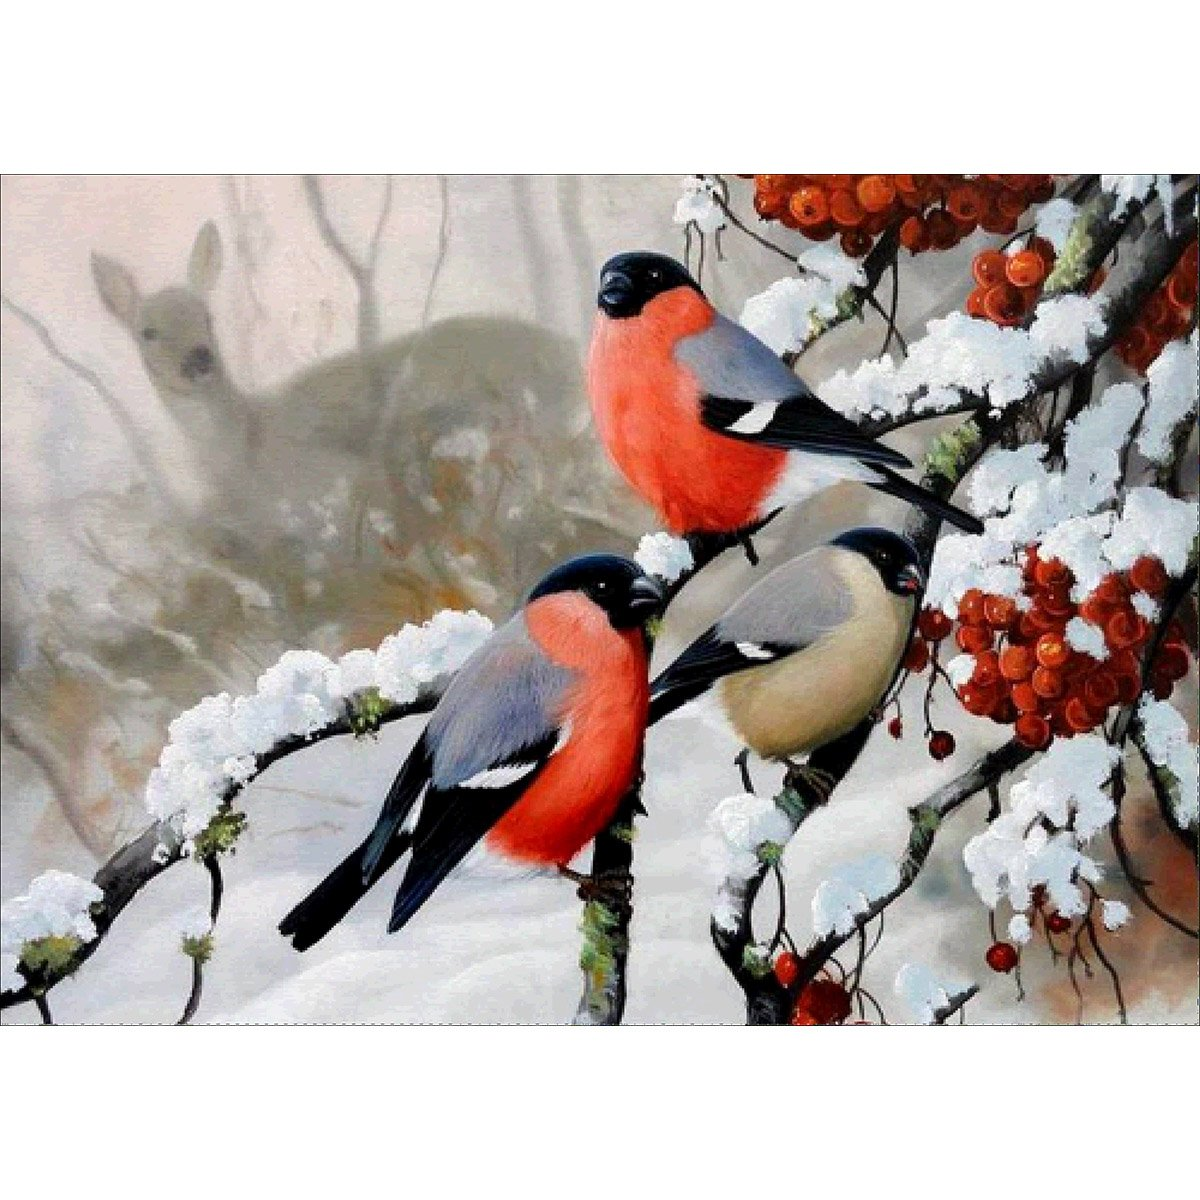 LAZODA DIY 5D Full Drill Diamond Painting Rhinestone Embroidery Cross Stitch Arts Craft for Home Decoration Winter Bird 30*40CM